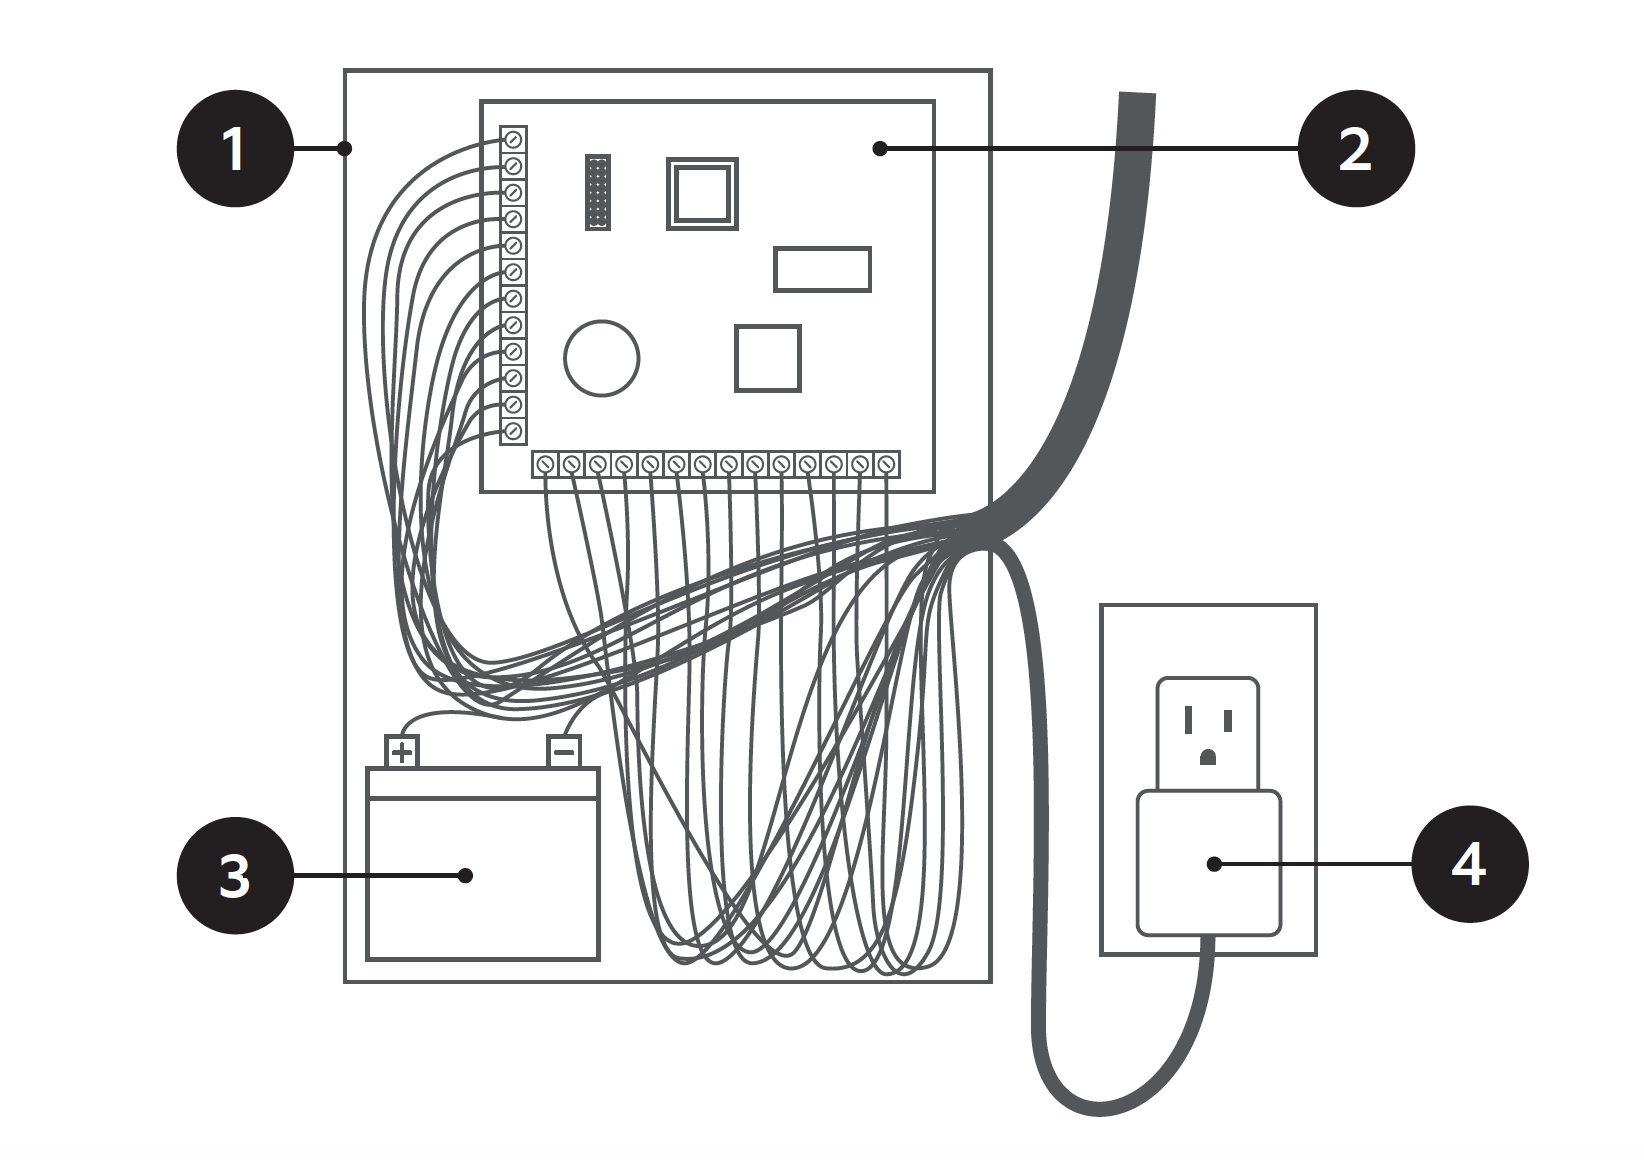 Anatomy Of A Wired Alarm Panel